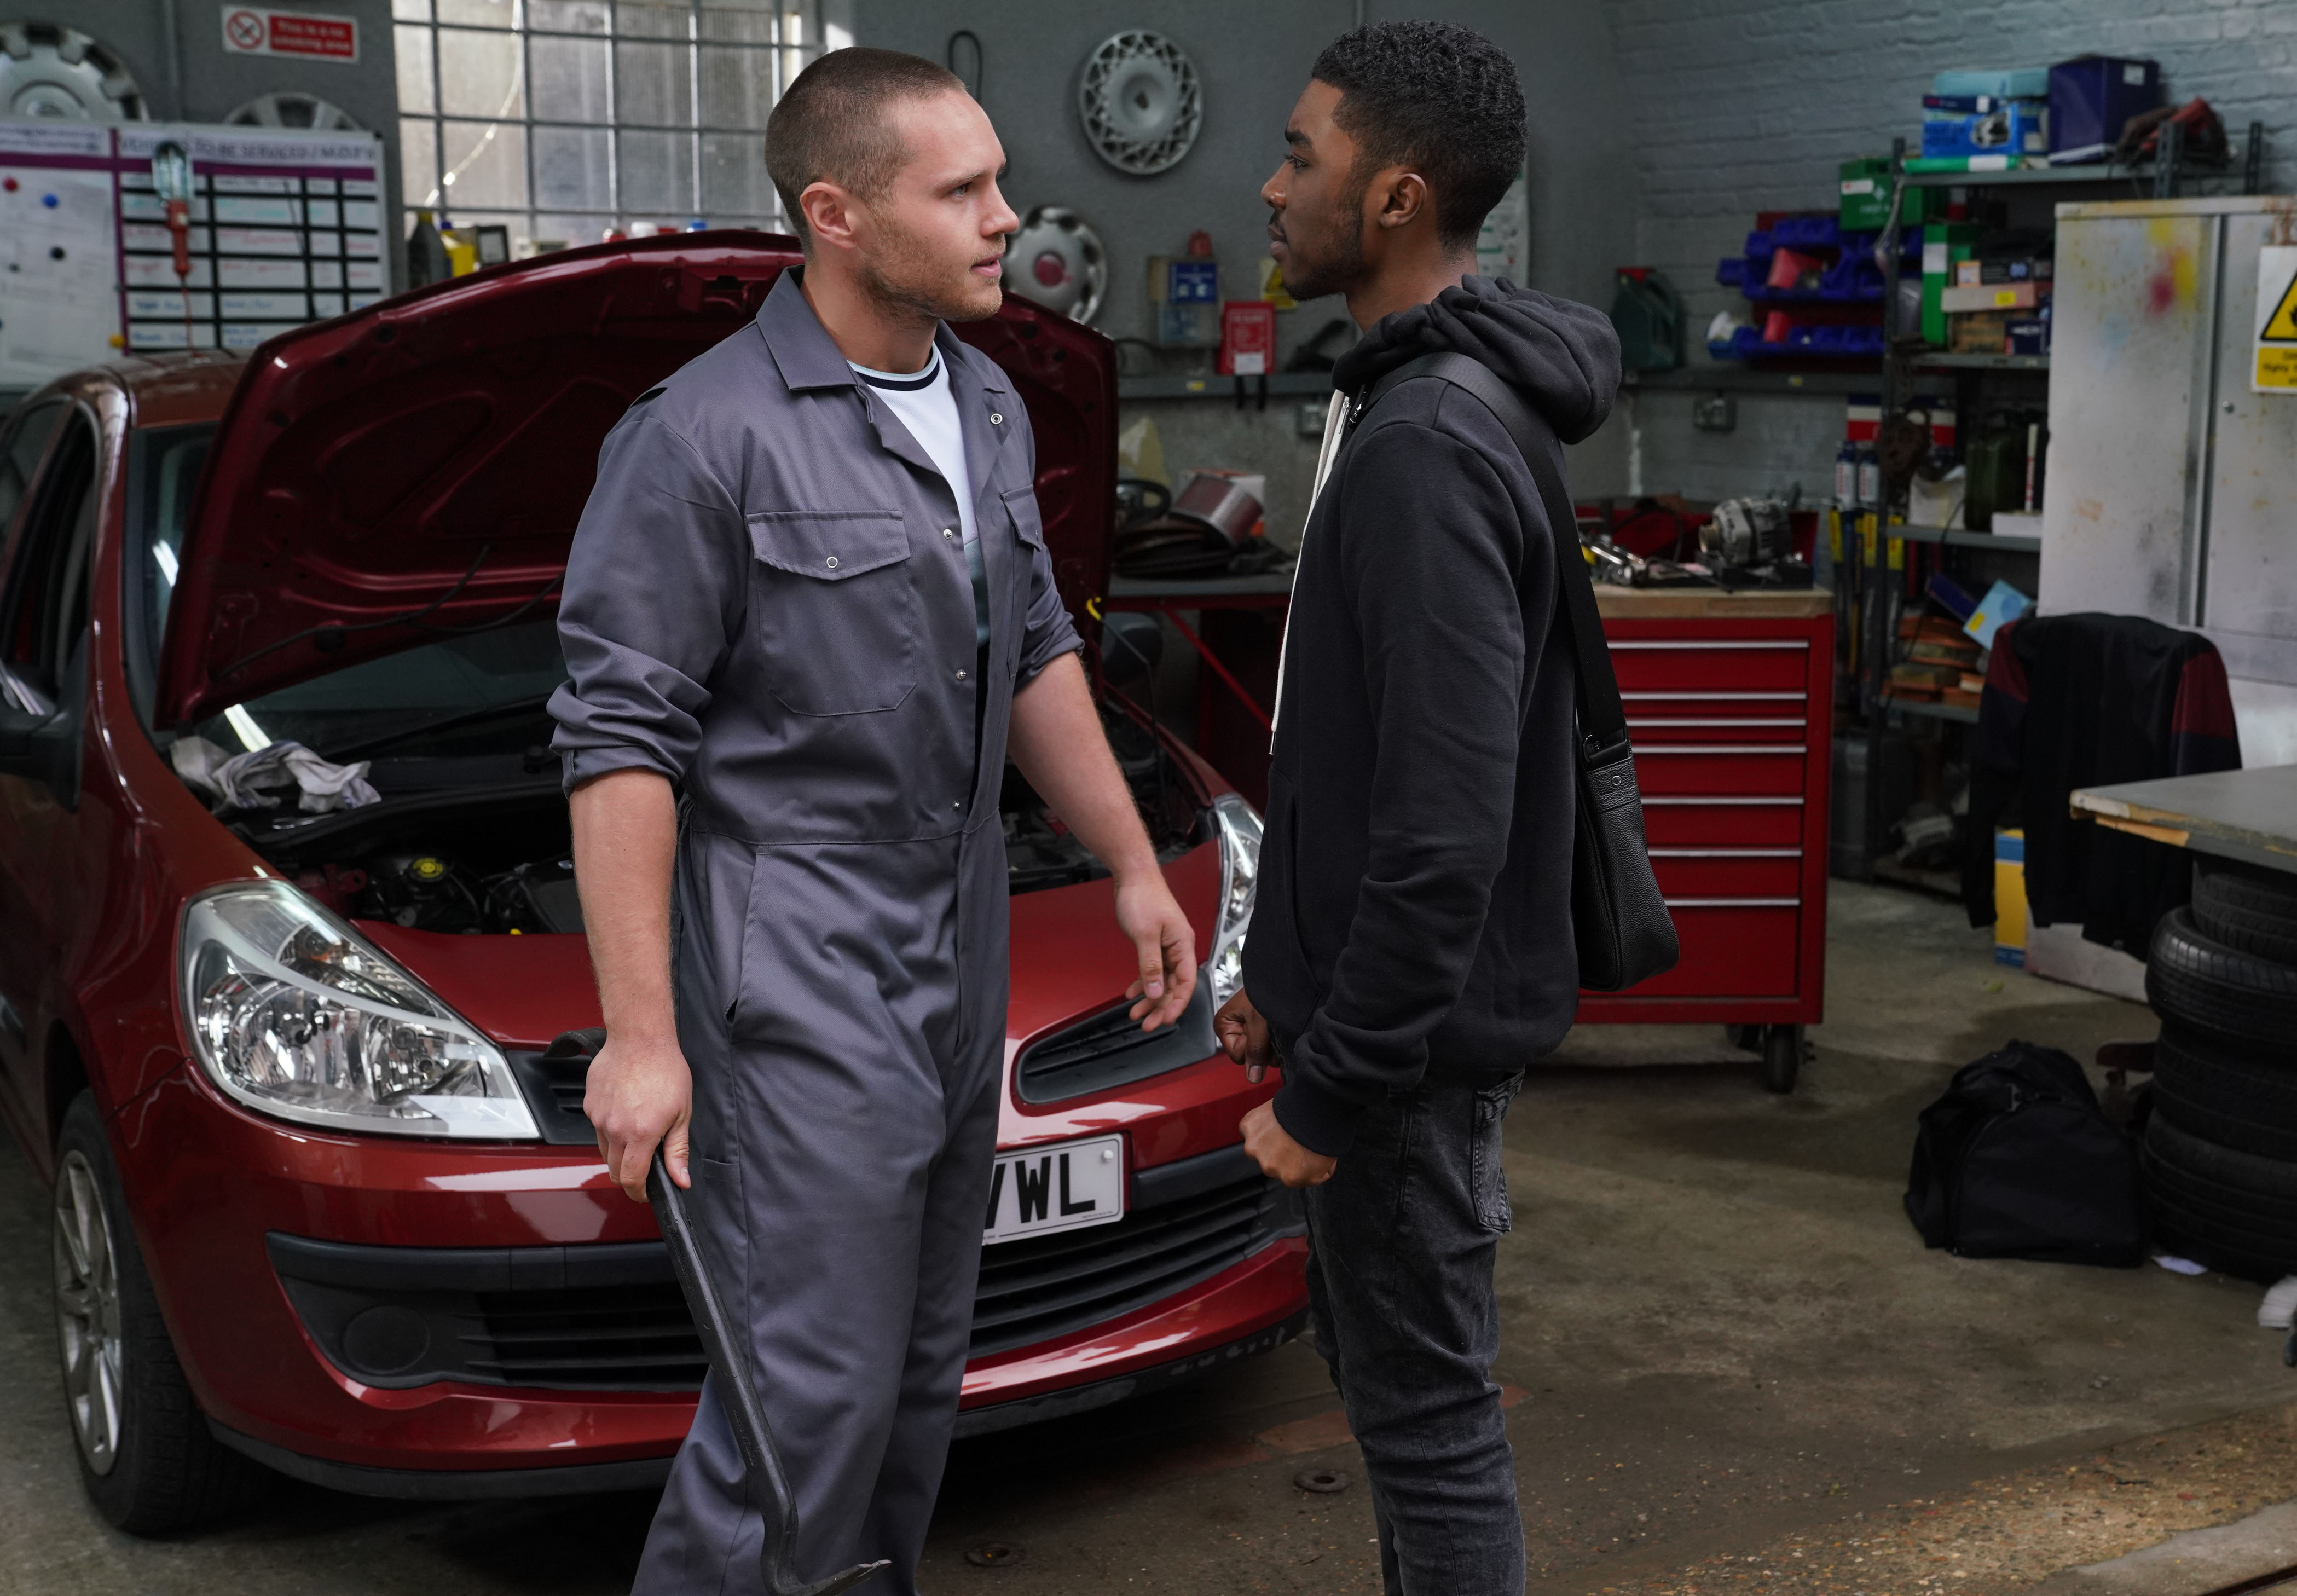 EastEnders spoilers: Phil saves Dennis and Keanu from a violent confrontation